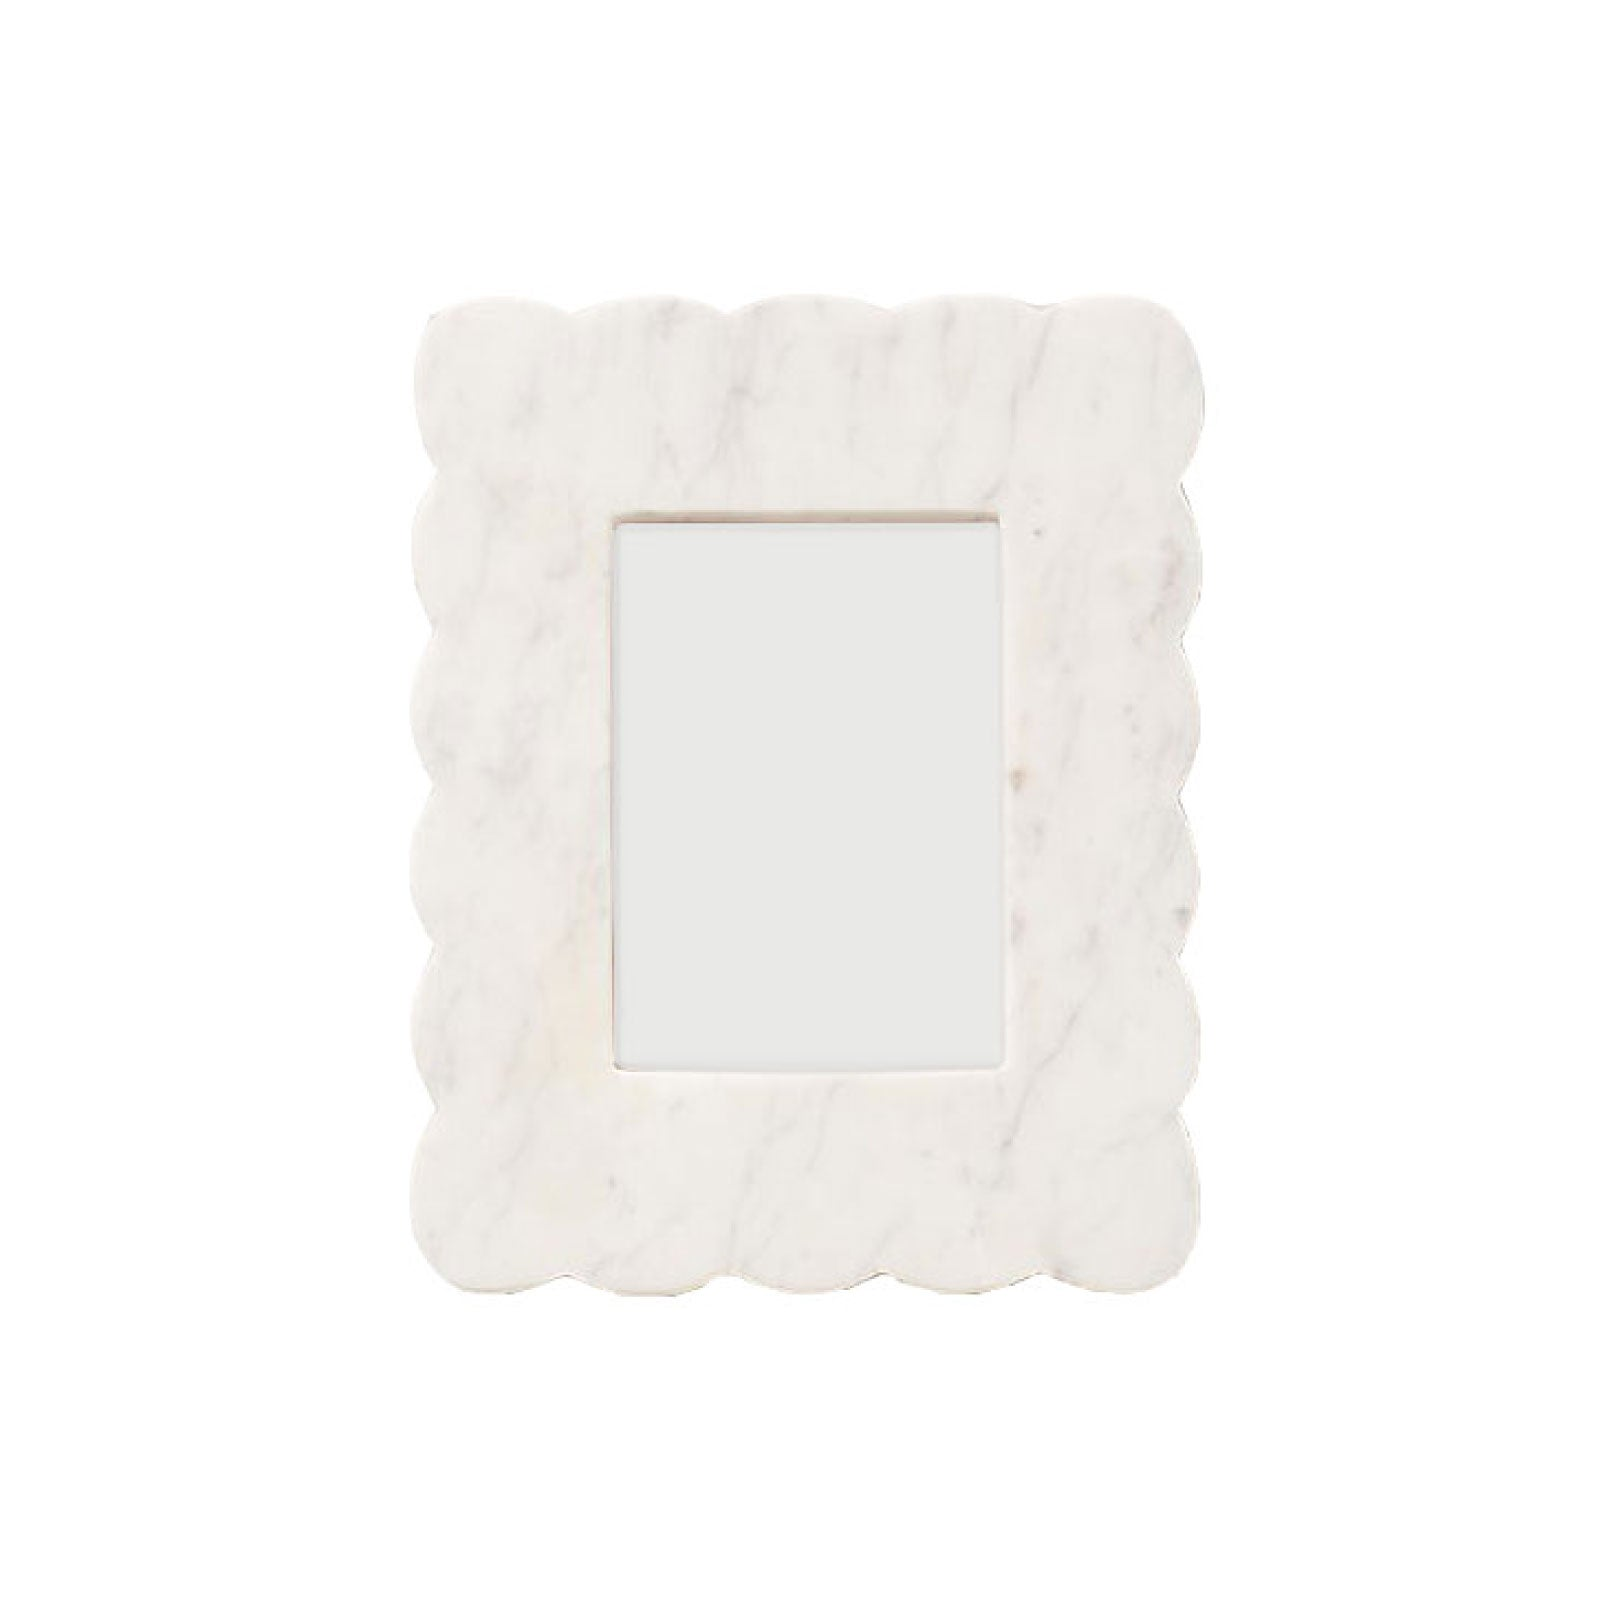 Scalloped Marble Frame